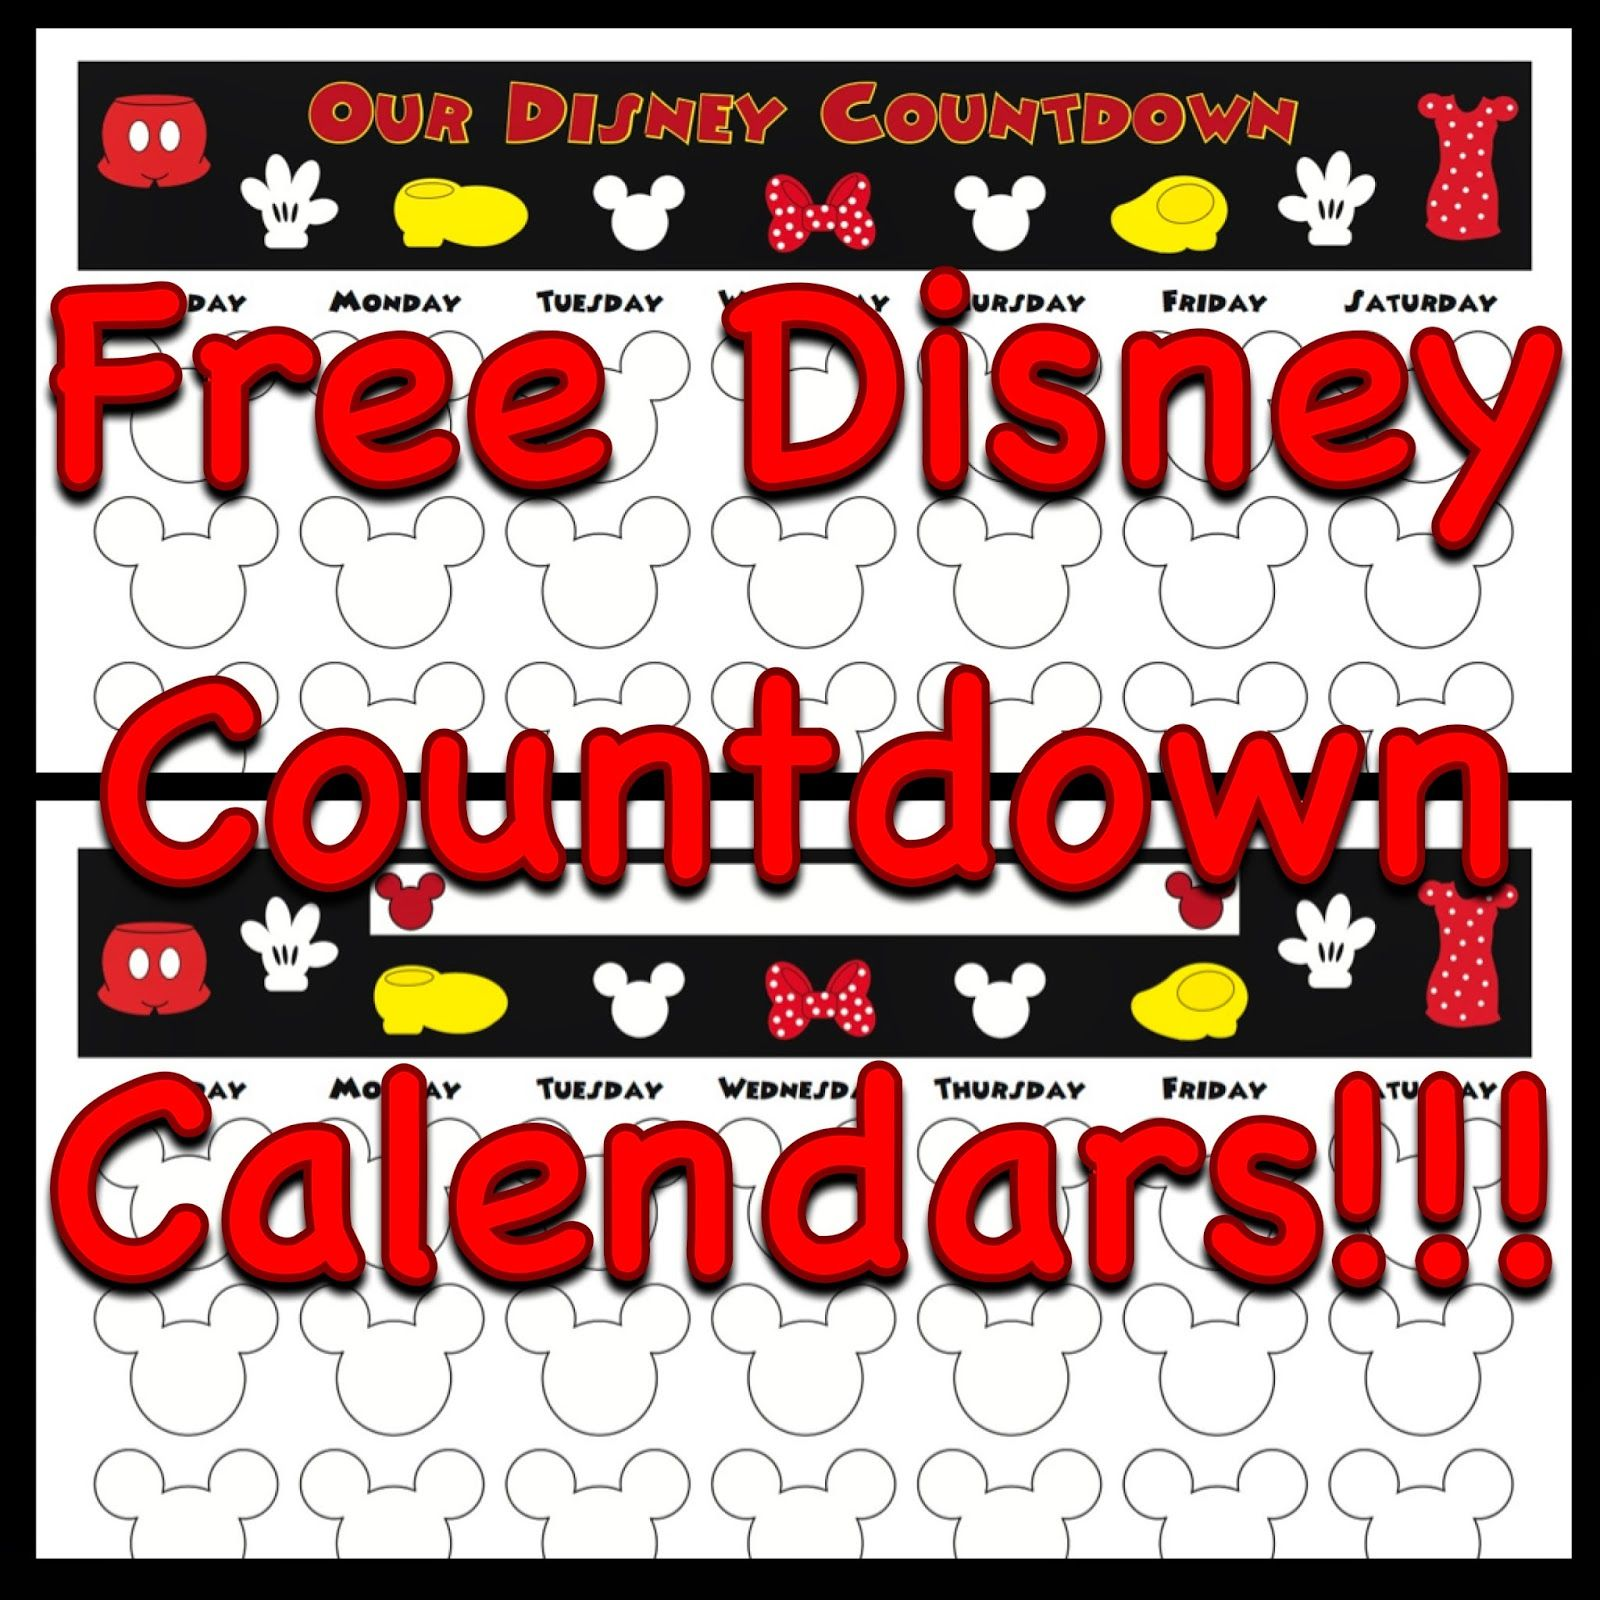 My Disney Life Free Mickey And Minnie Mouse Countdown Calendars